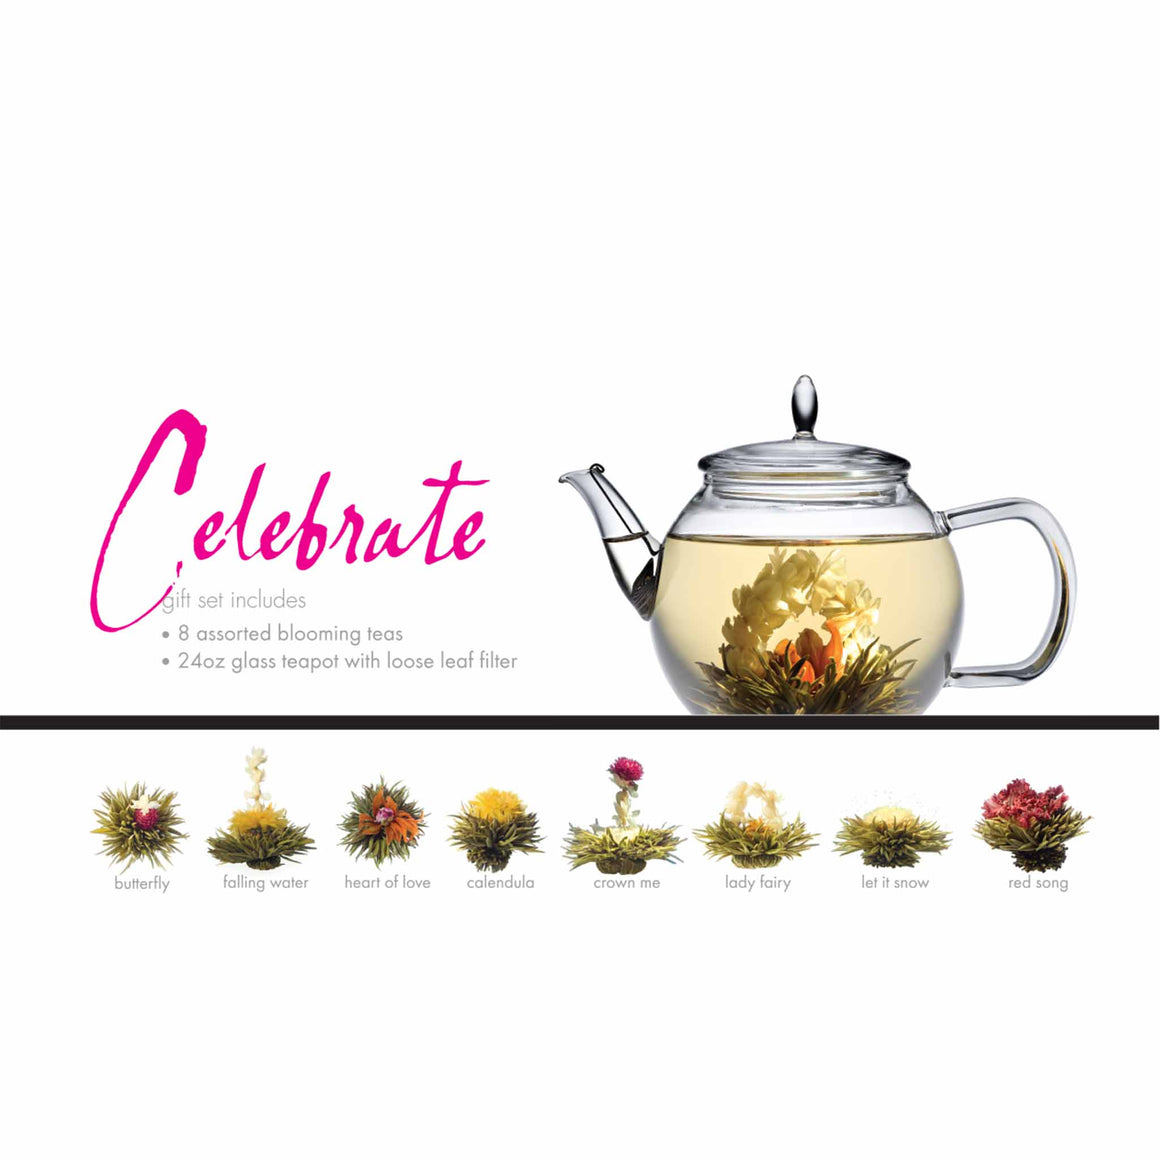 teaposy celebrate posy gift set with 8 unique blooming teas in a 24oz glass teapot